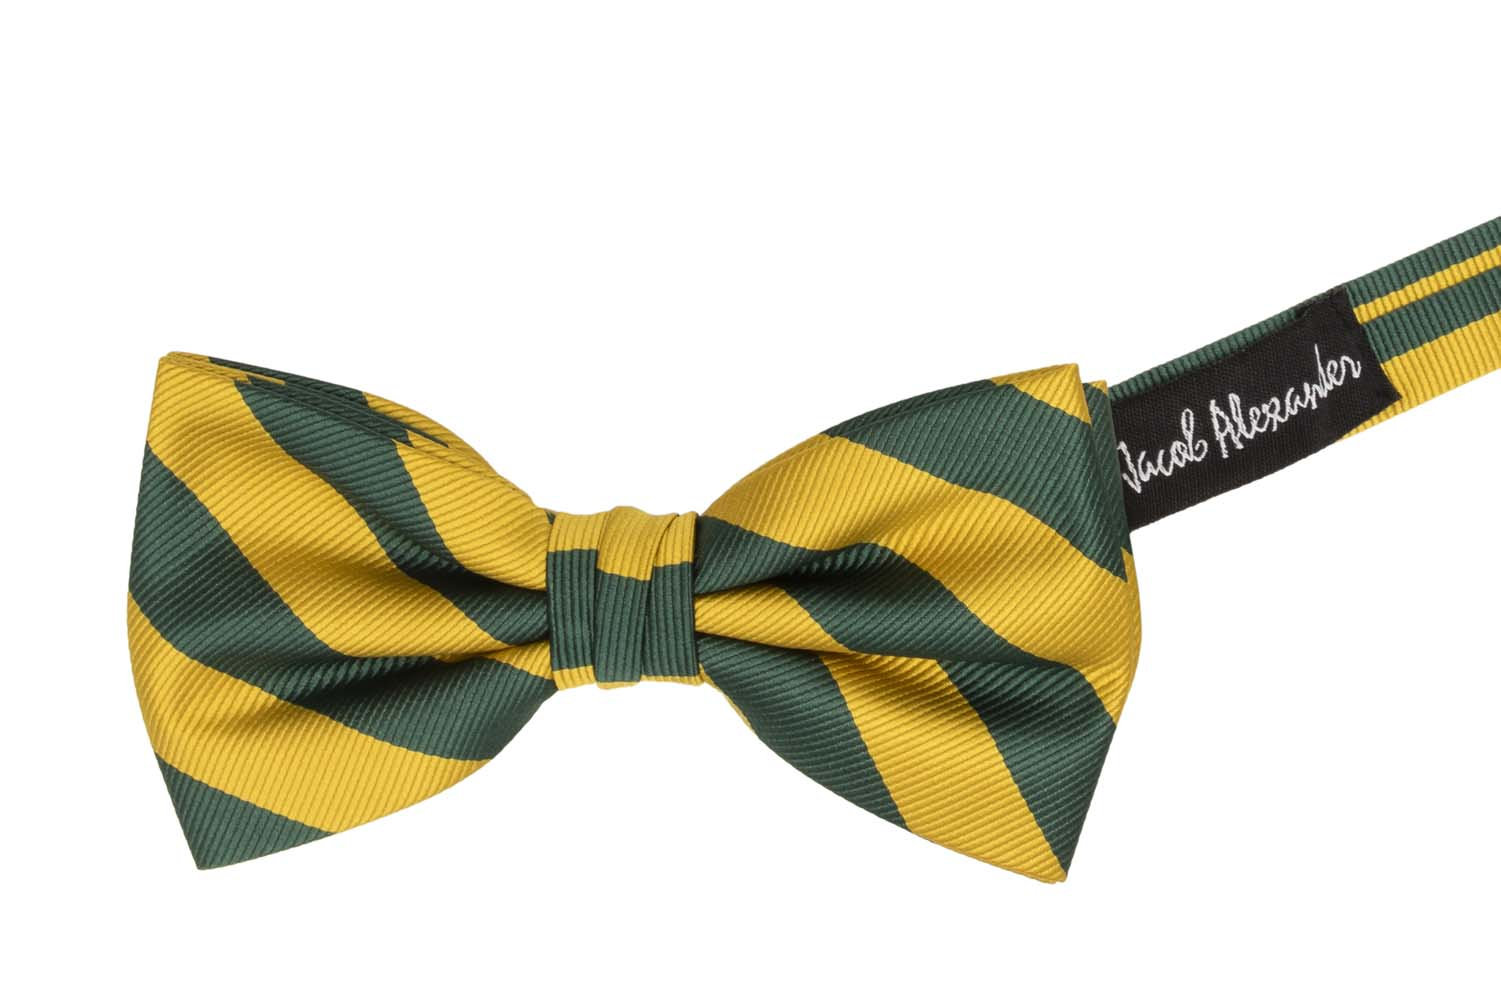 Jacob-Alexander-Stripe-Woven-Men-039-s-College-Striped-Pretied-Bowtie thumbnail 8